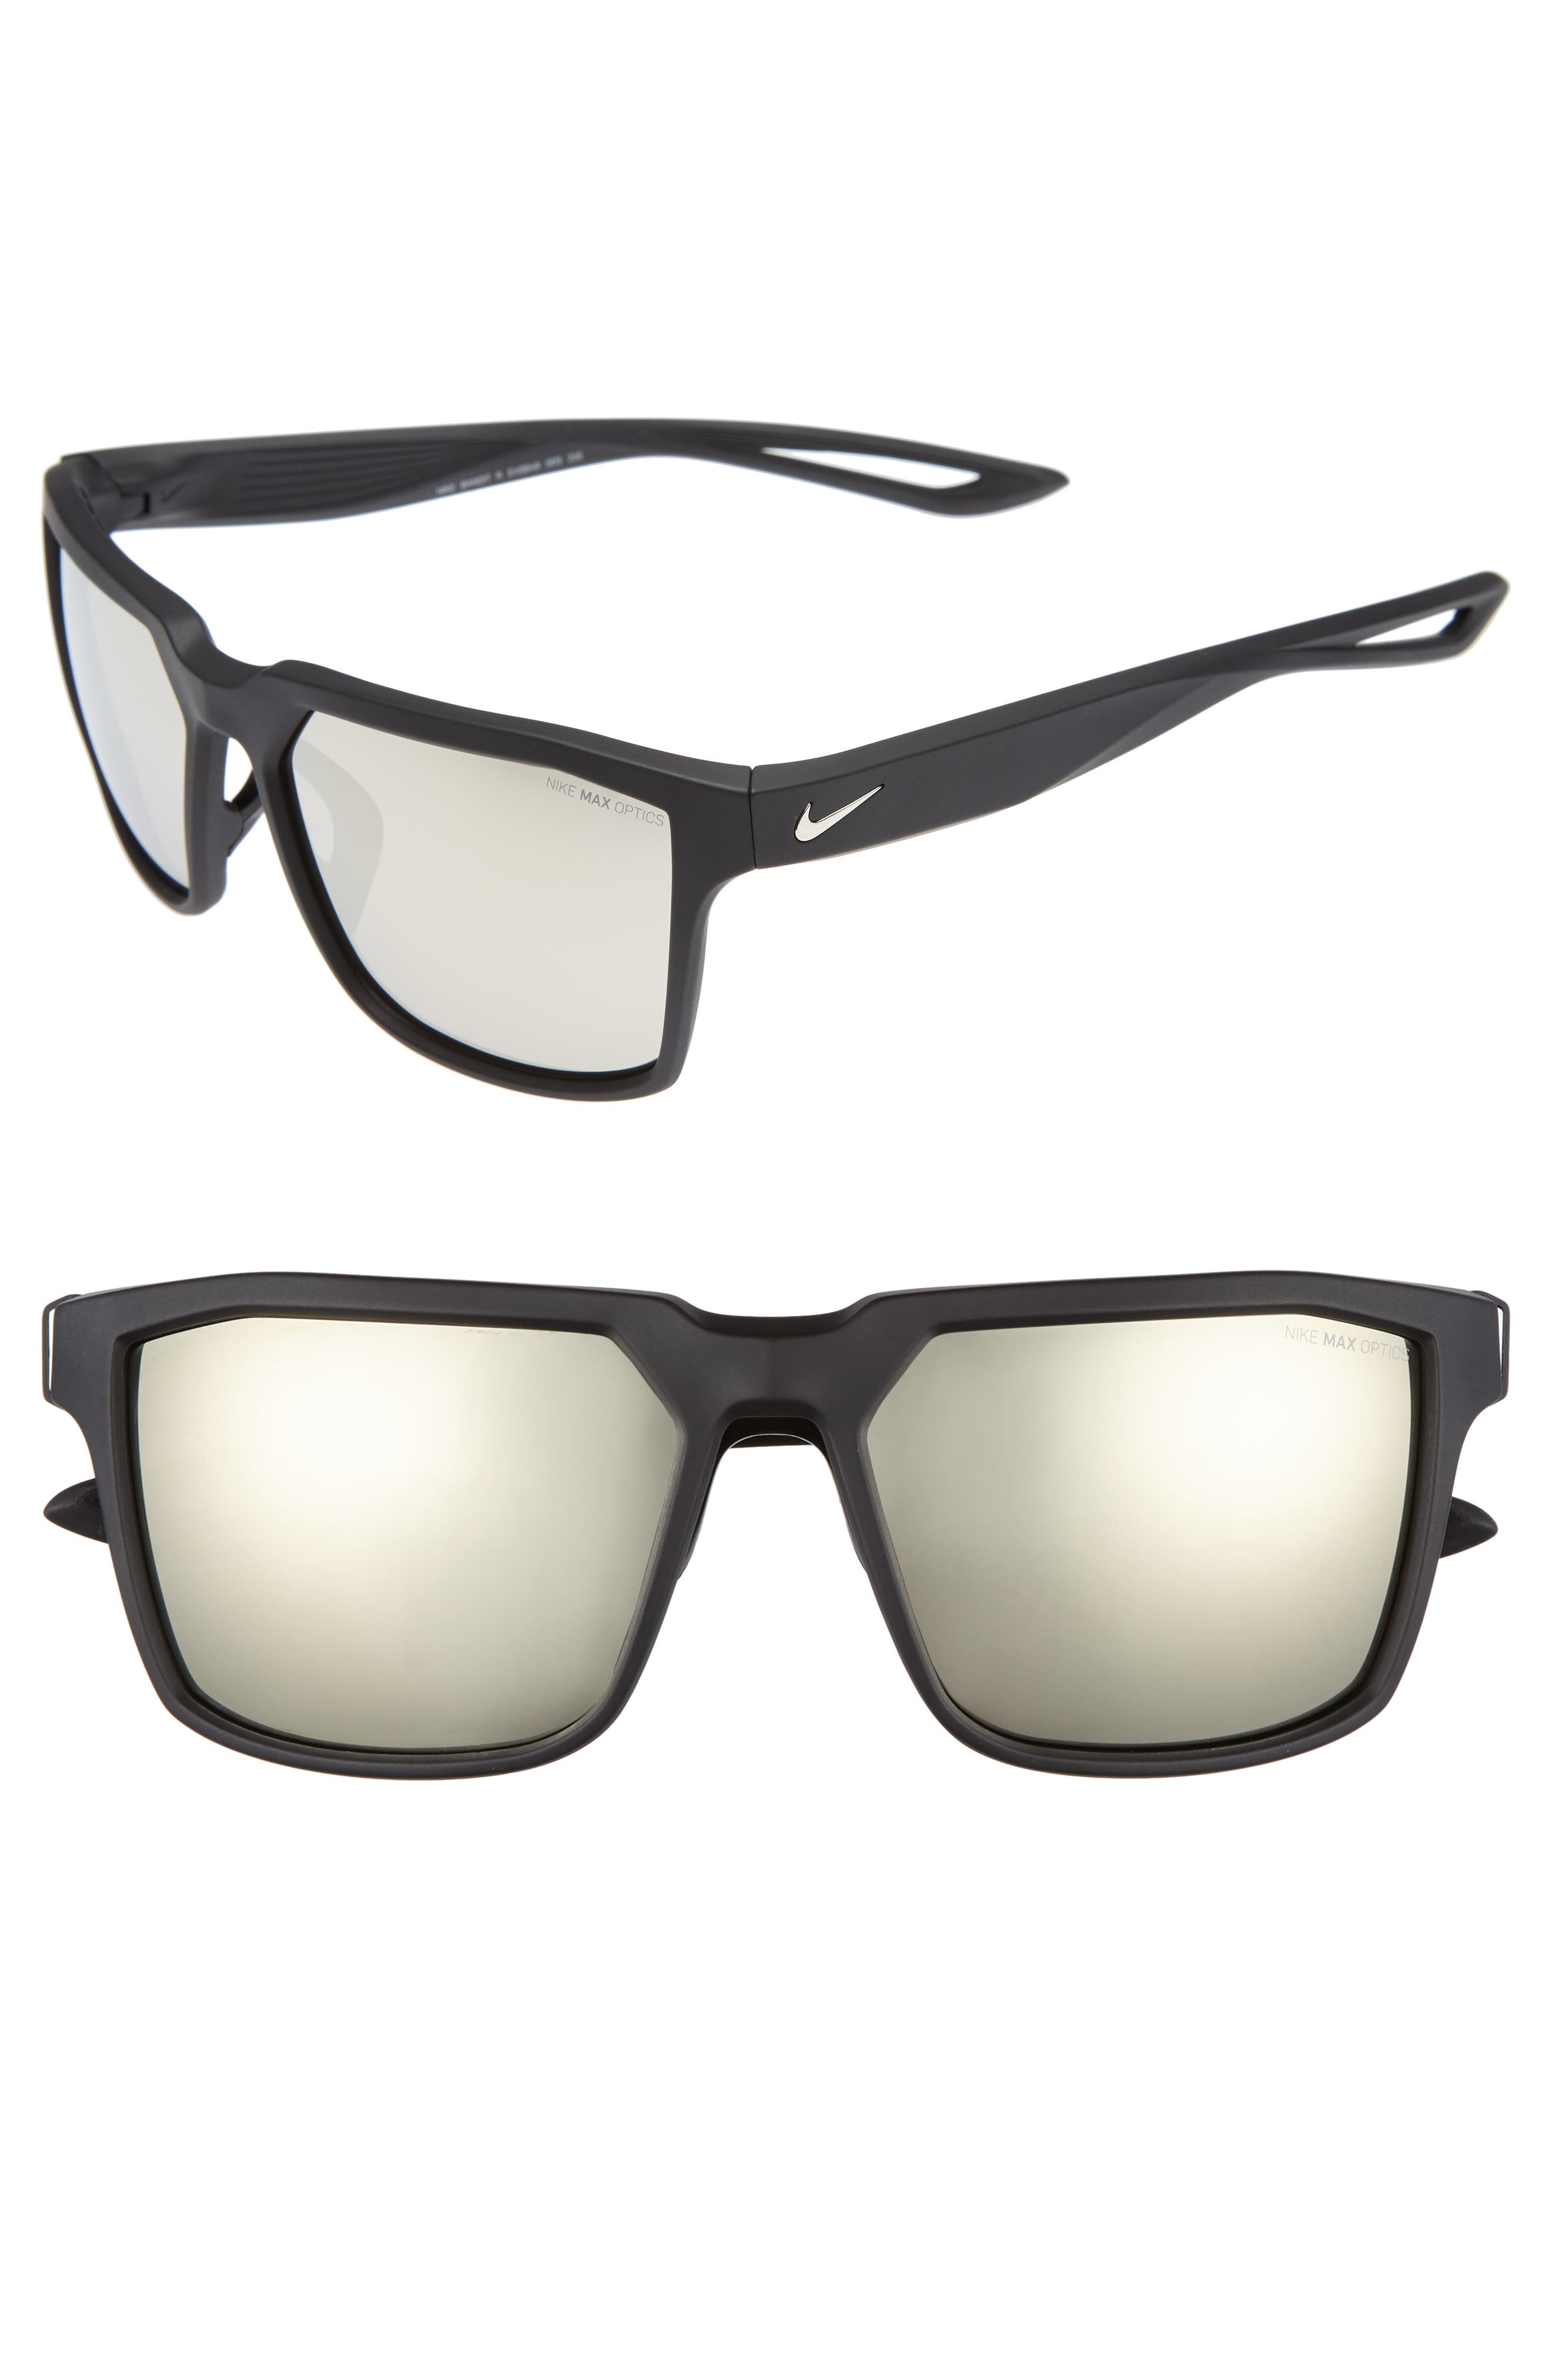 Bandit R 59mm Sunglasses,                             Main thumbnail 1, color,                             MATTE BLACK/ SILVER